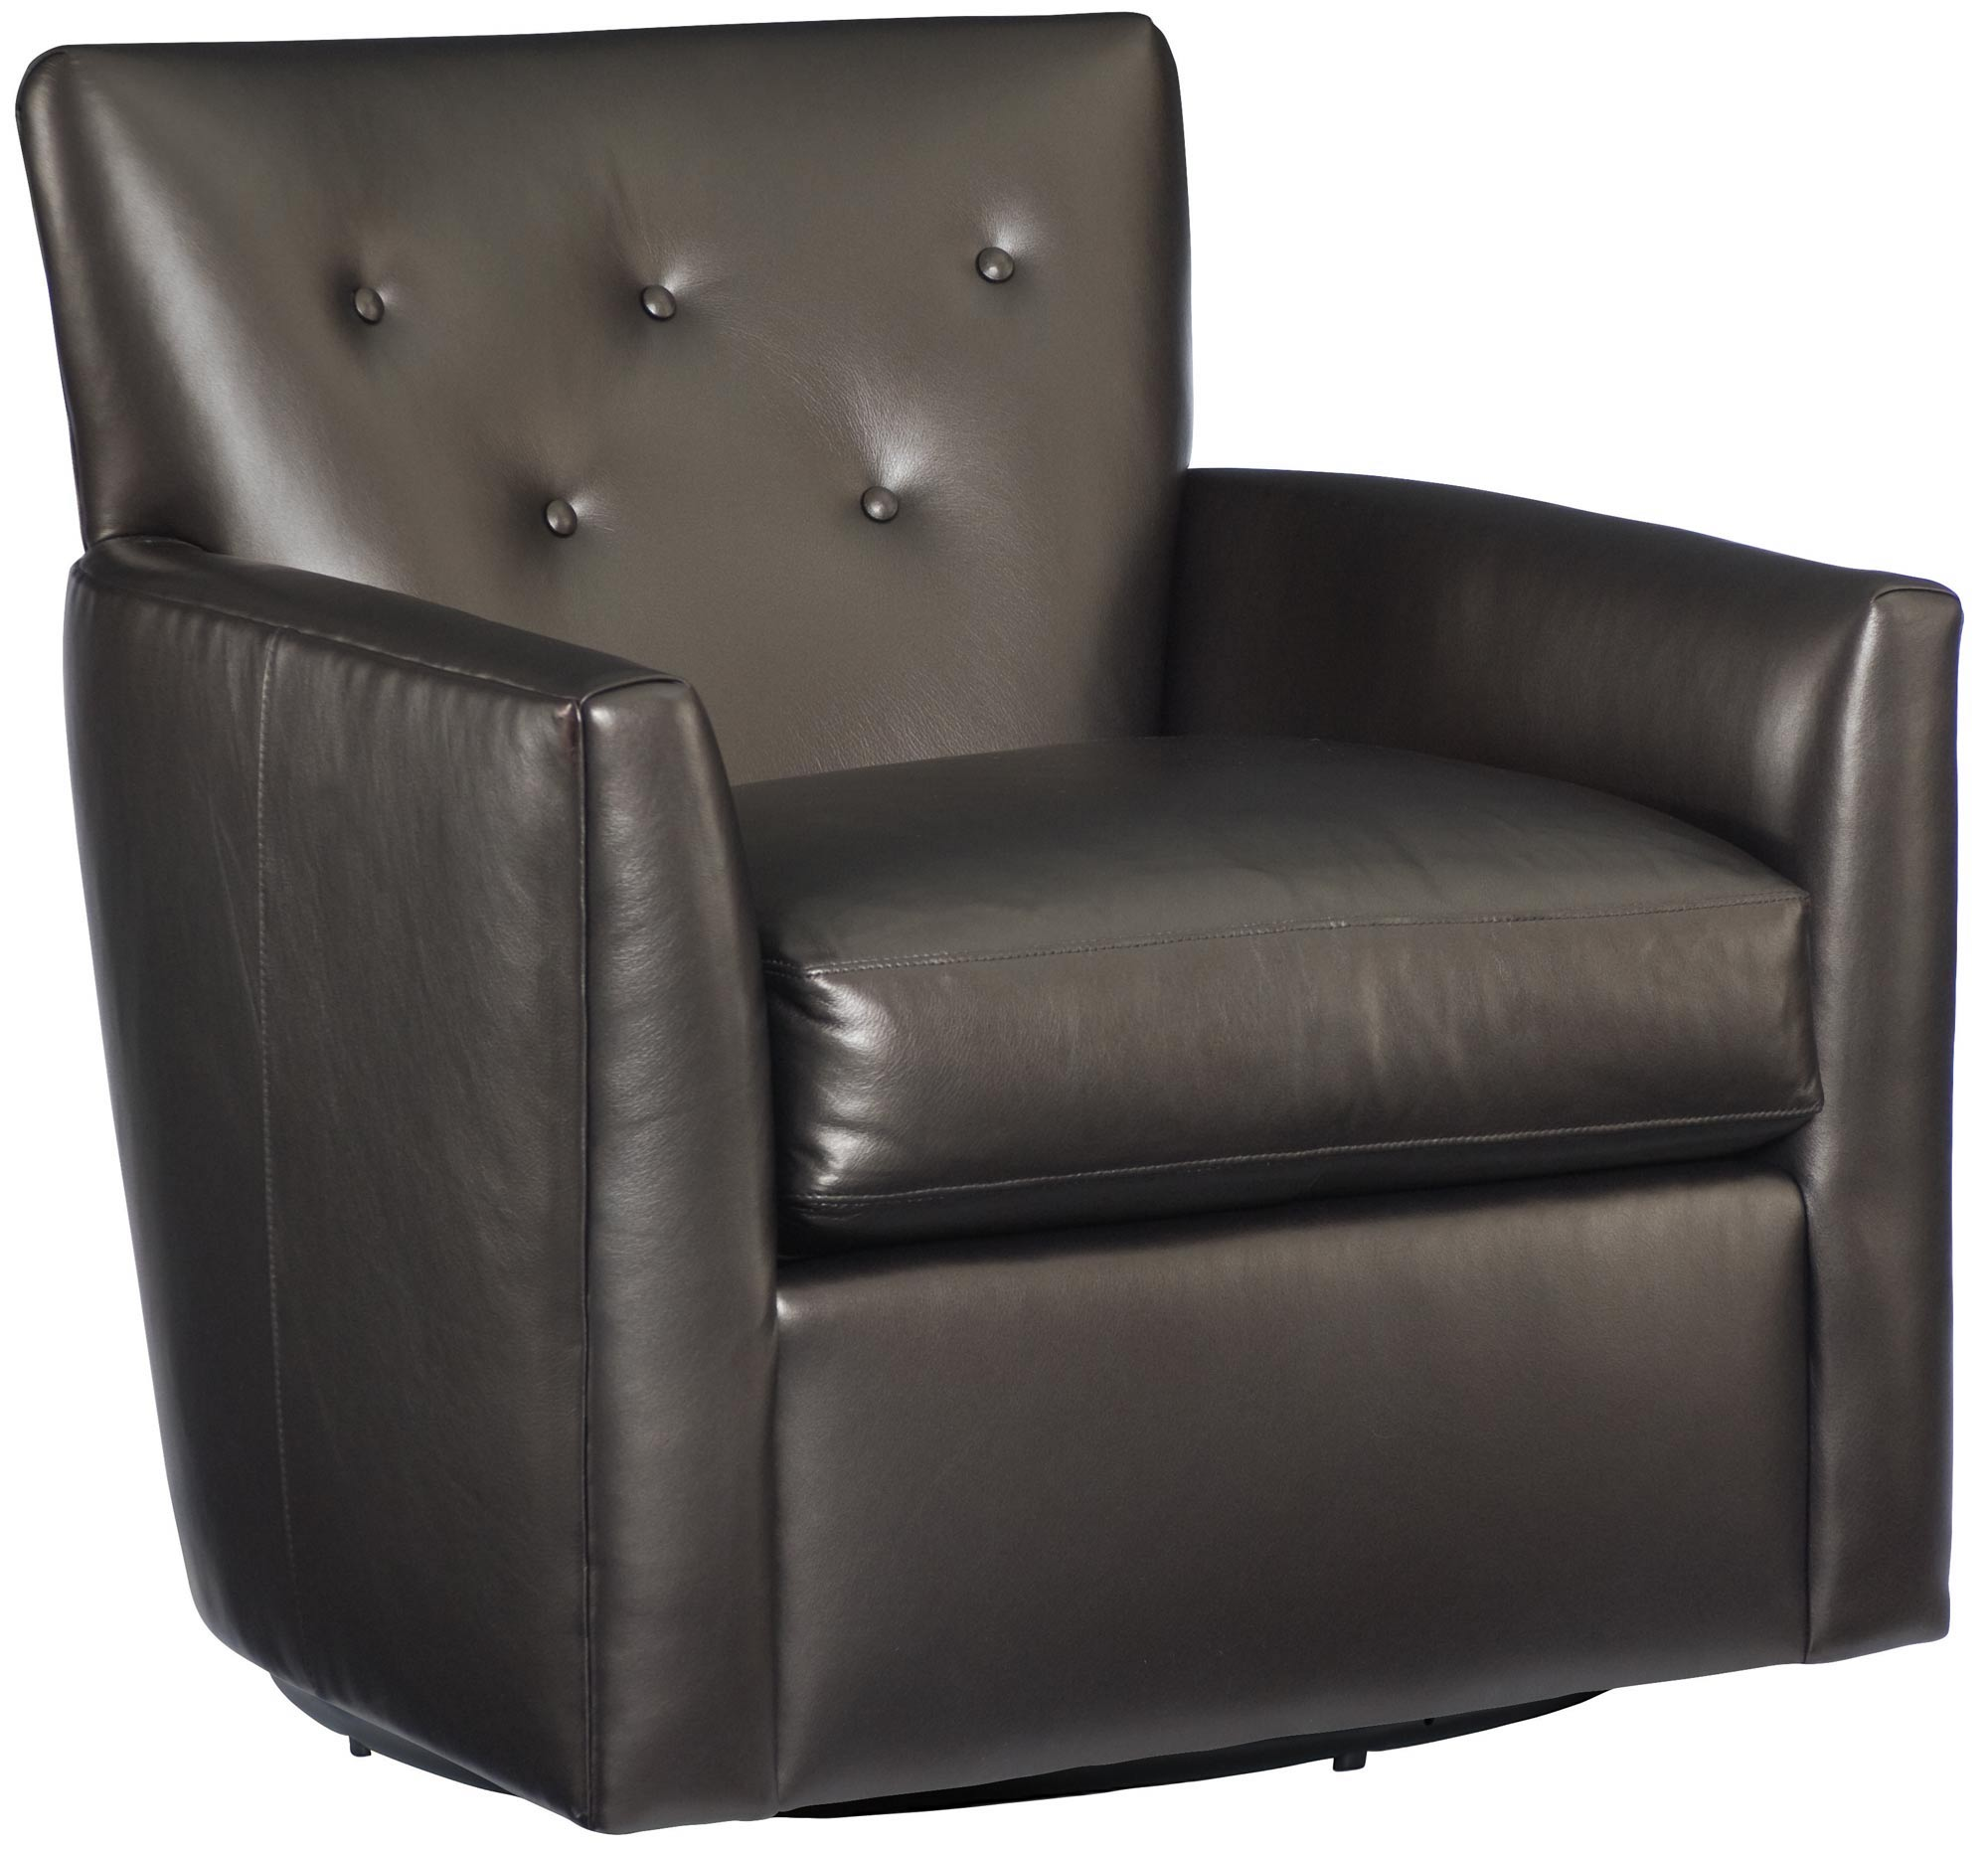 Bernhardt Leather Chair Swivel Chair Bernhardt